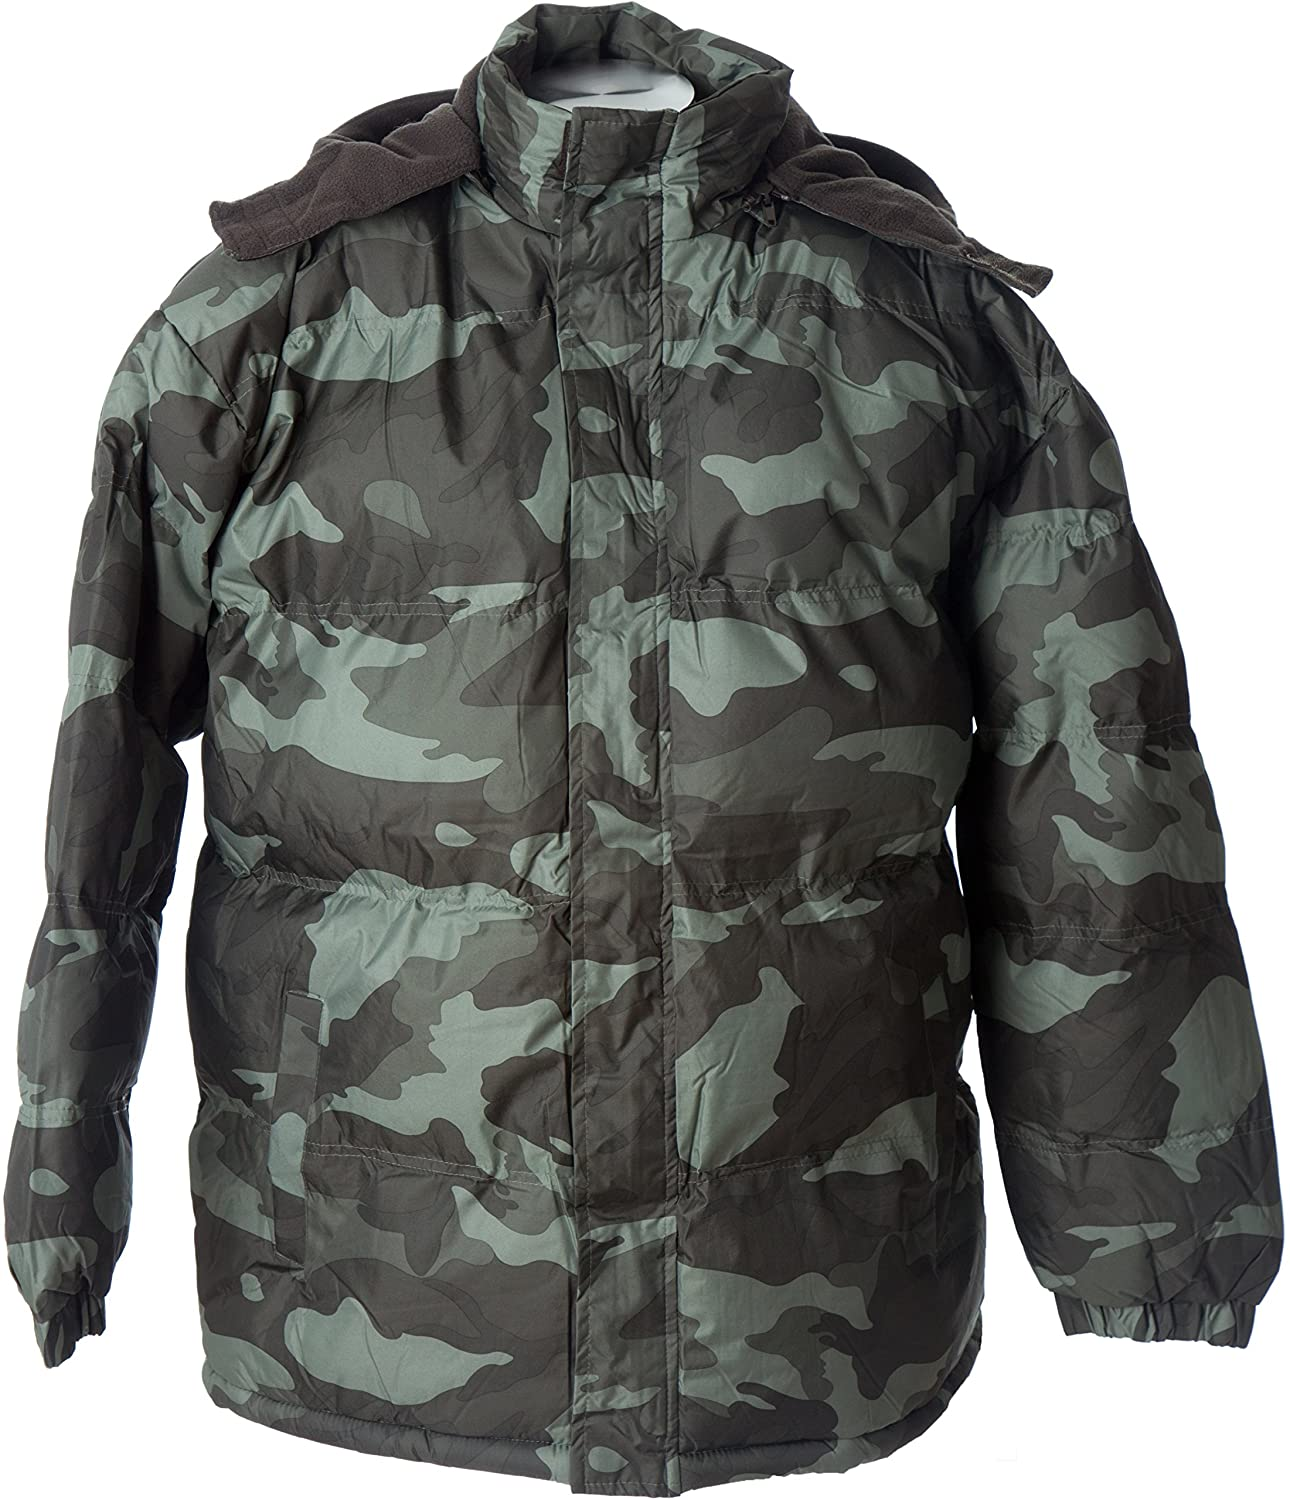 Polar Ice Lion Force Mens' Warm Camouflage Hooded Hunting Jacket Puffer Winter Coat